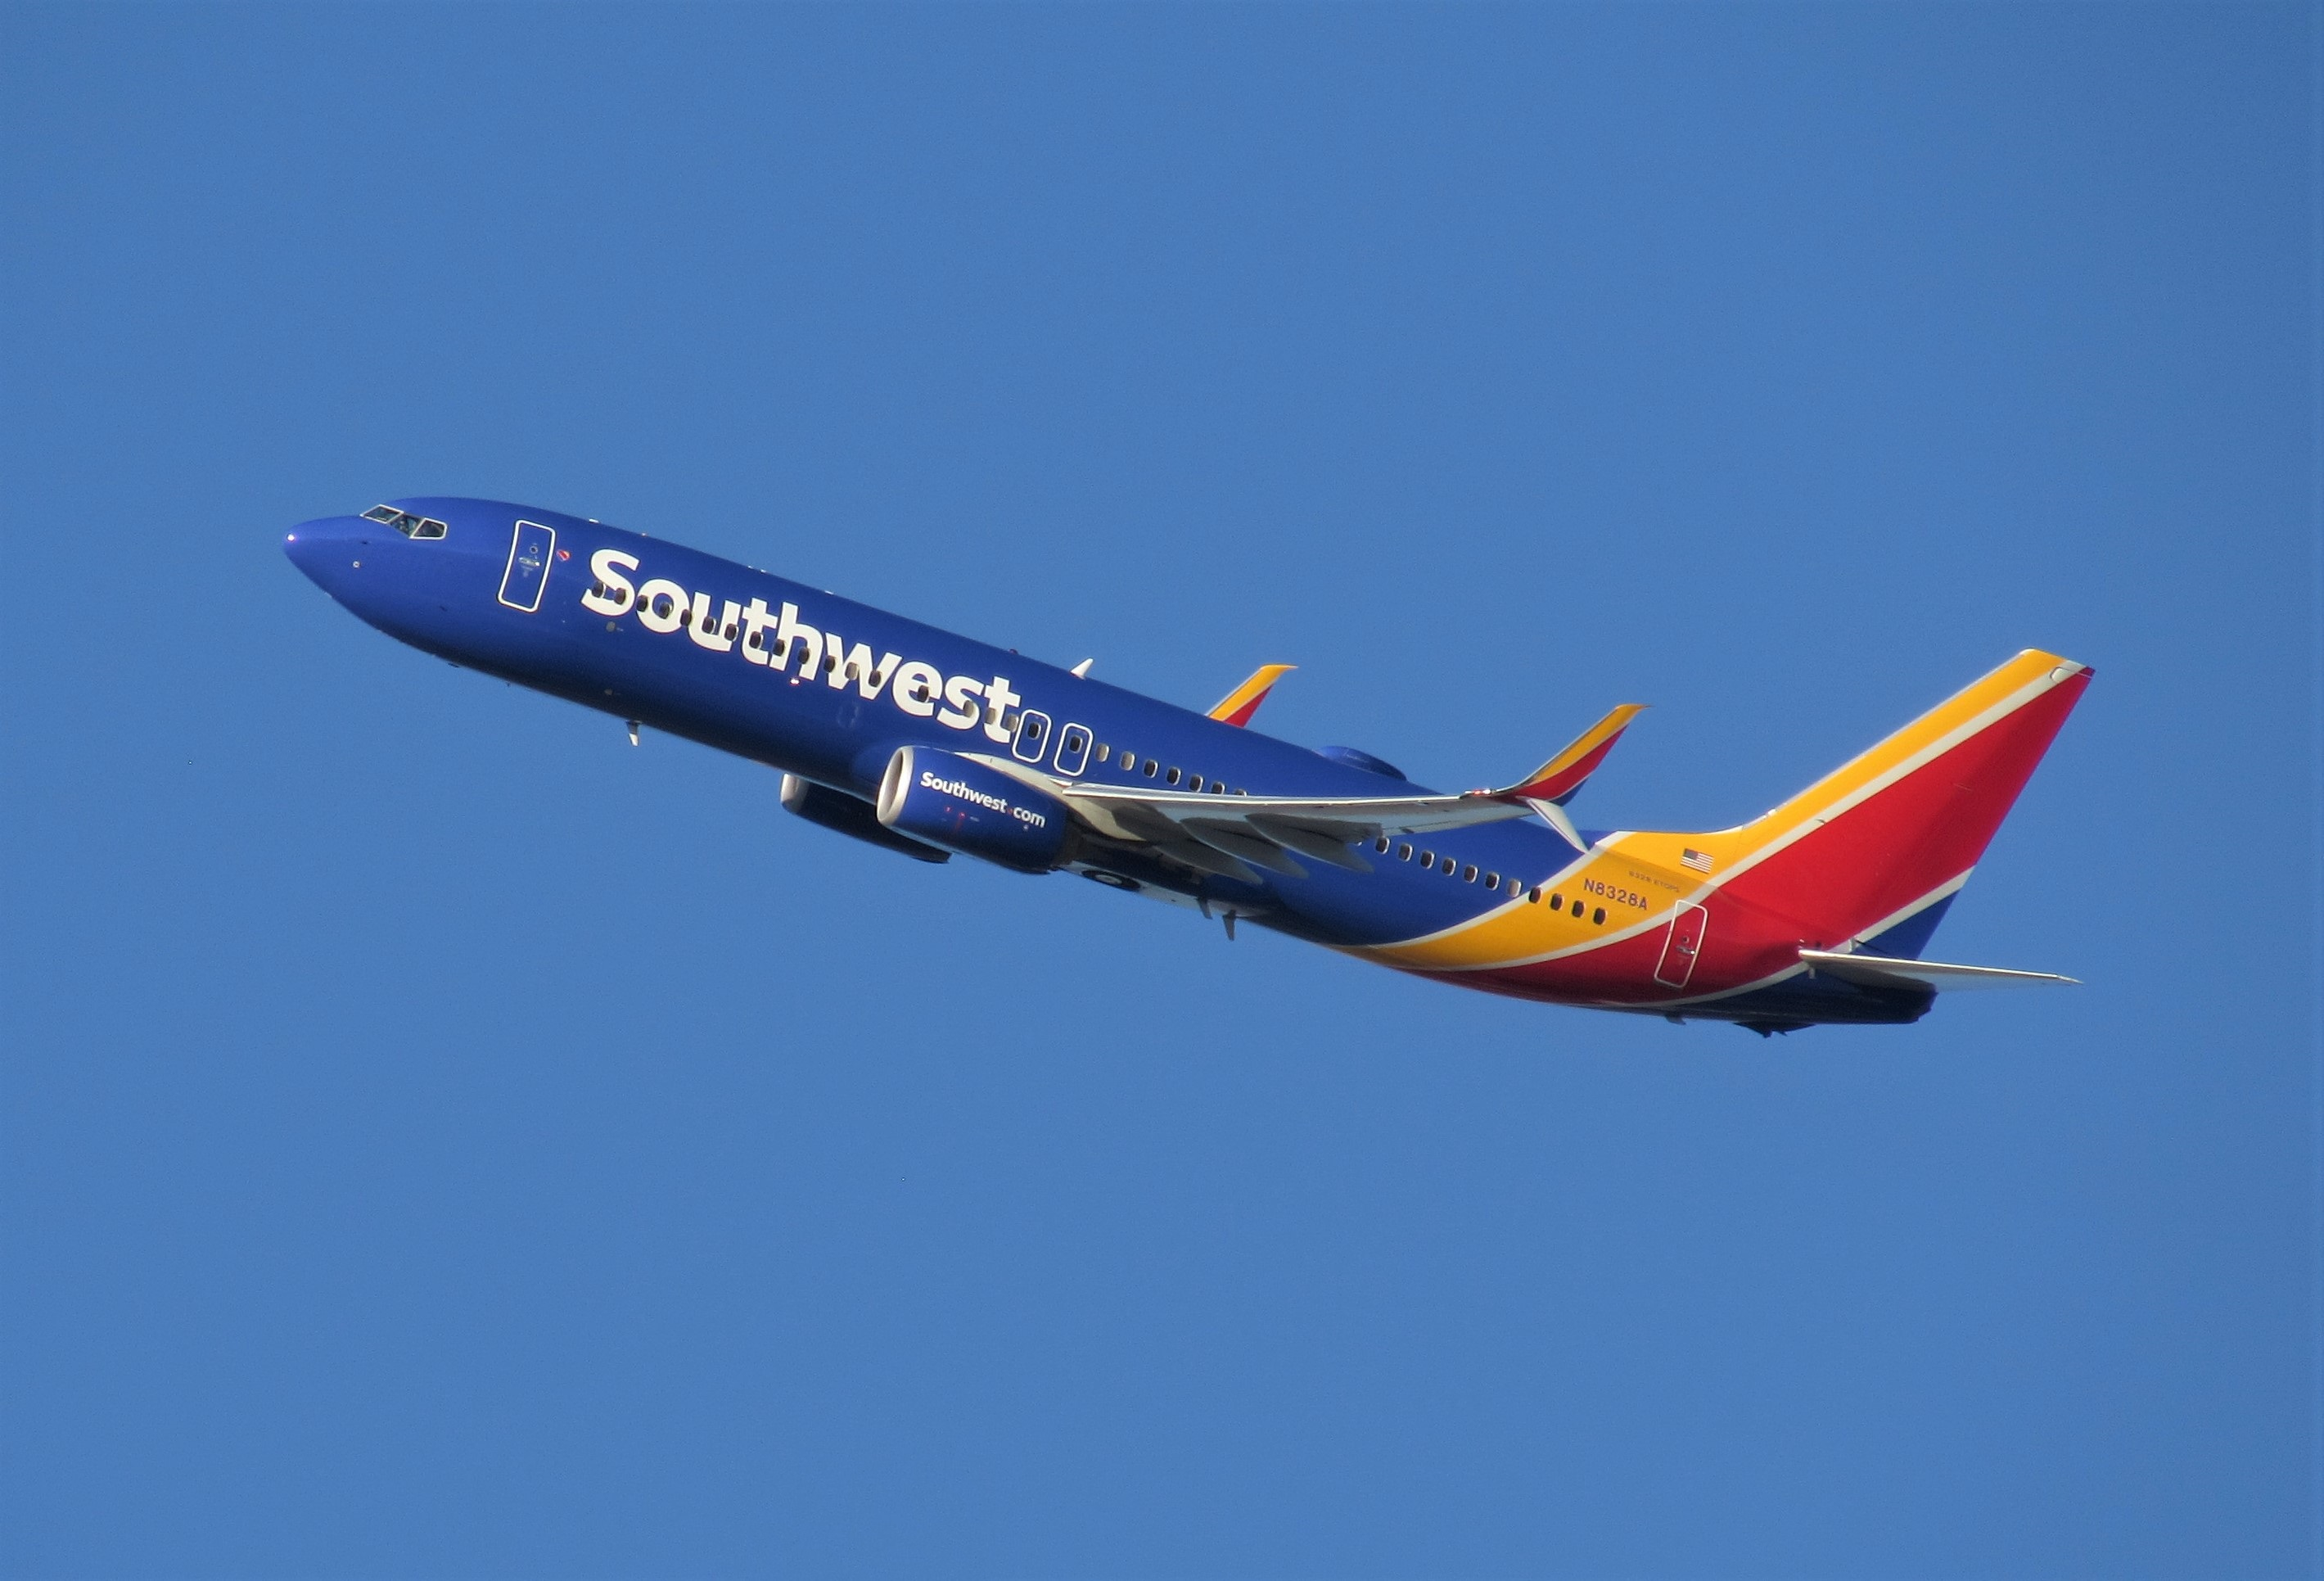 Max return lag may continue to enhance value of 737-800s